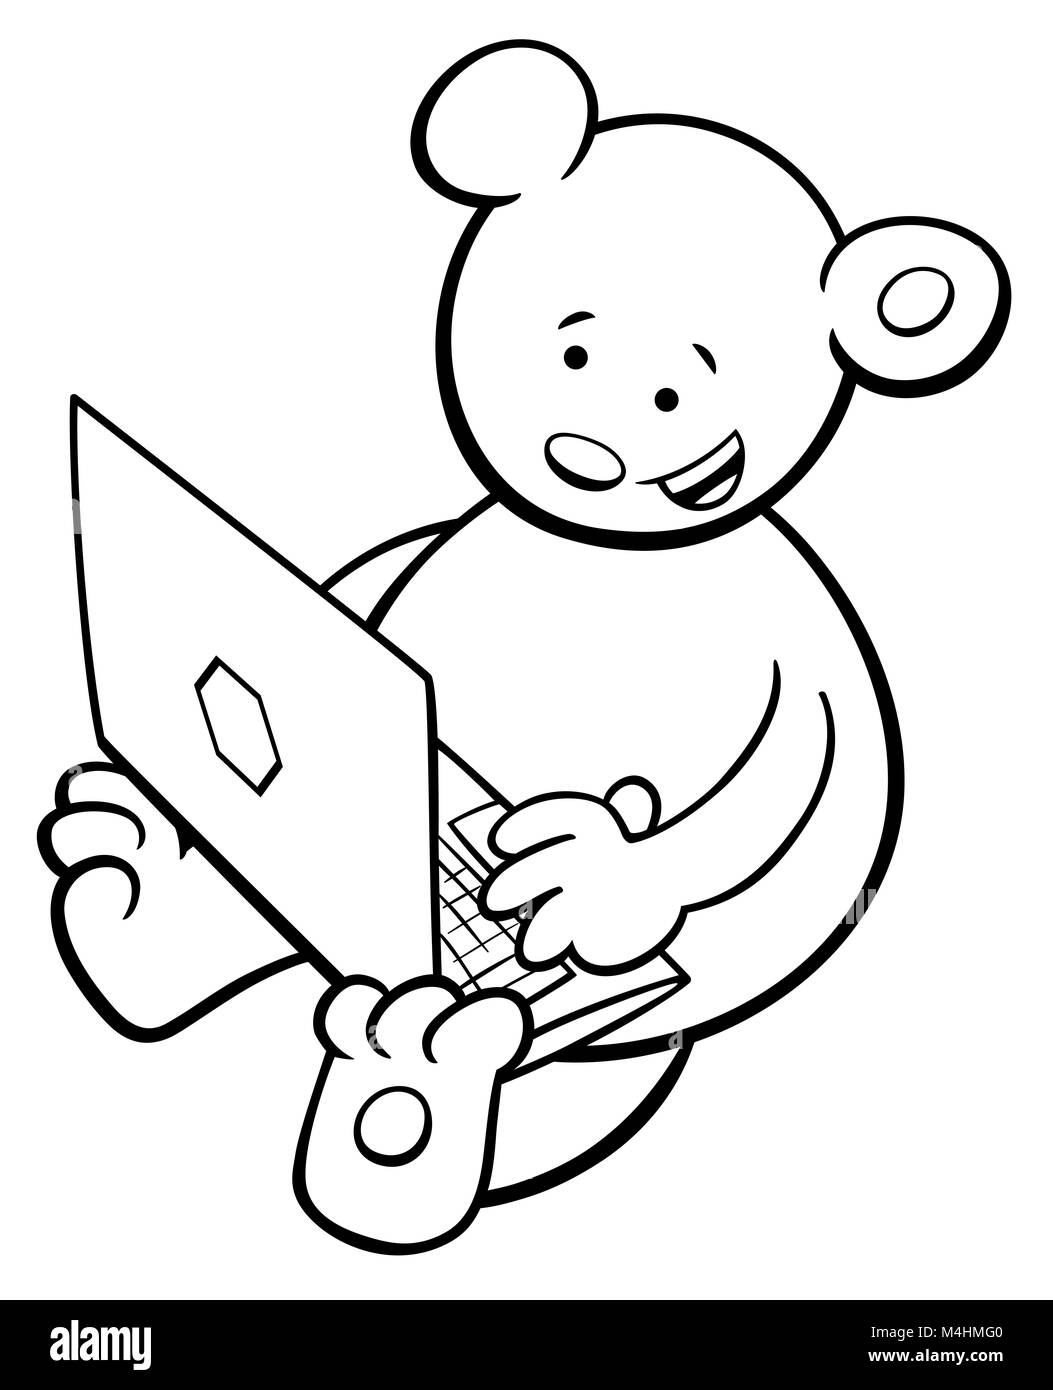 bear with notebook coloring book Stock Photo: 174951616 - Alamy